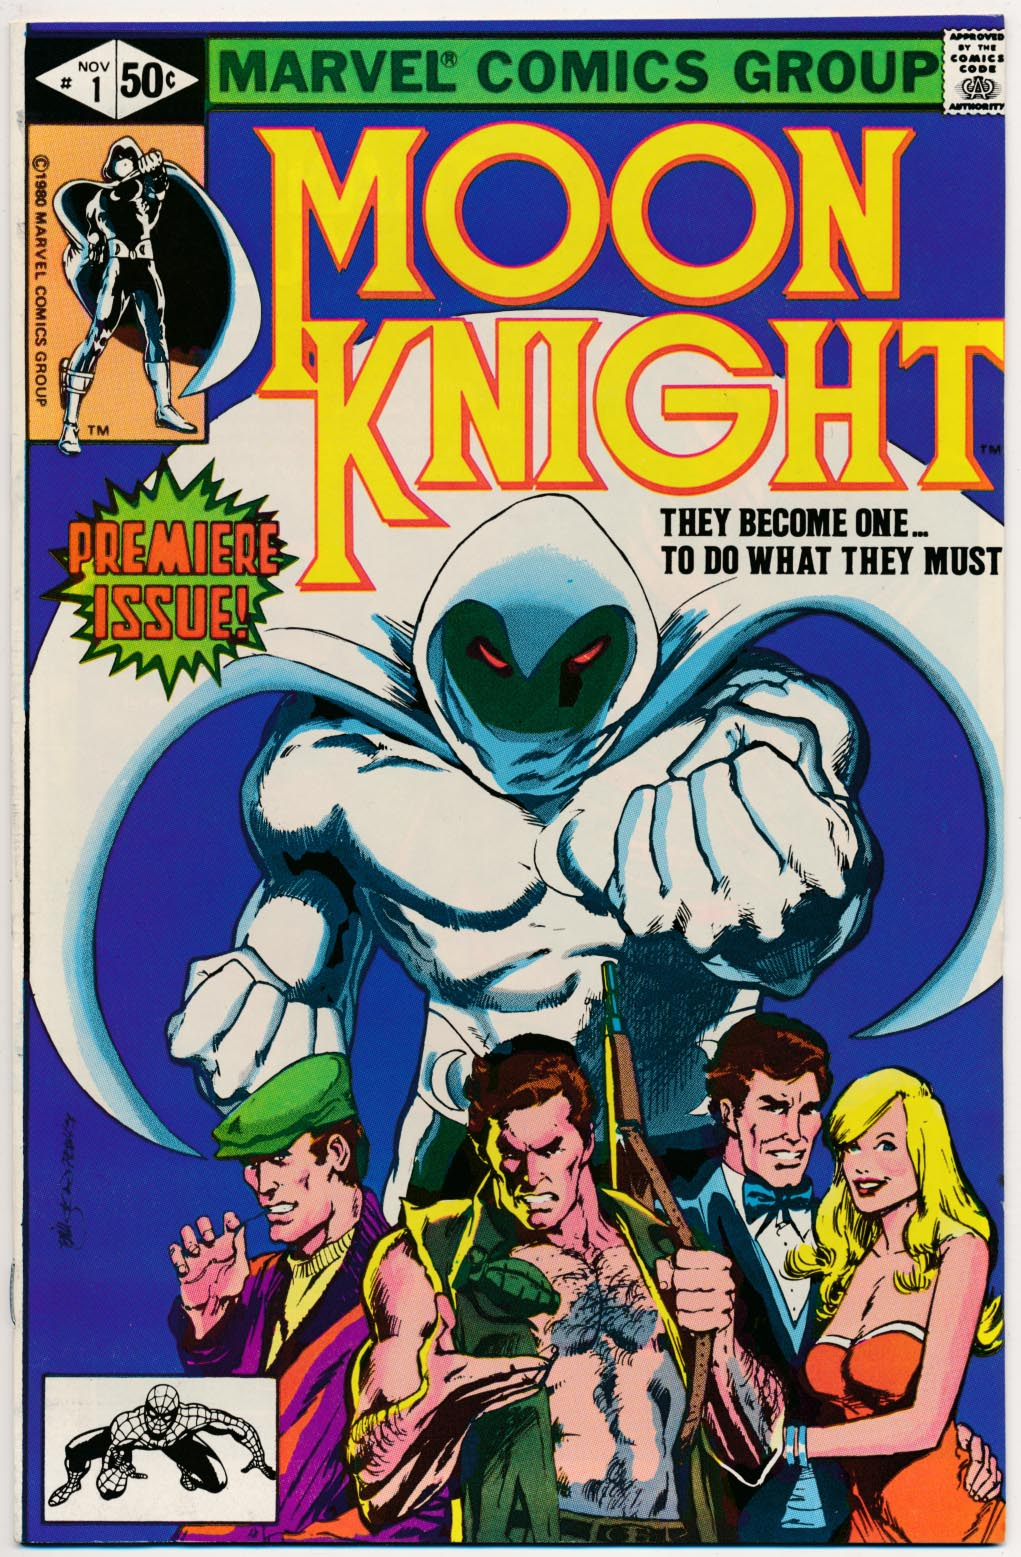 Moon Knight vol 1 - 1 (Direct Ed) -VFNM